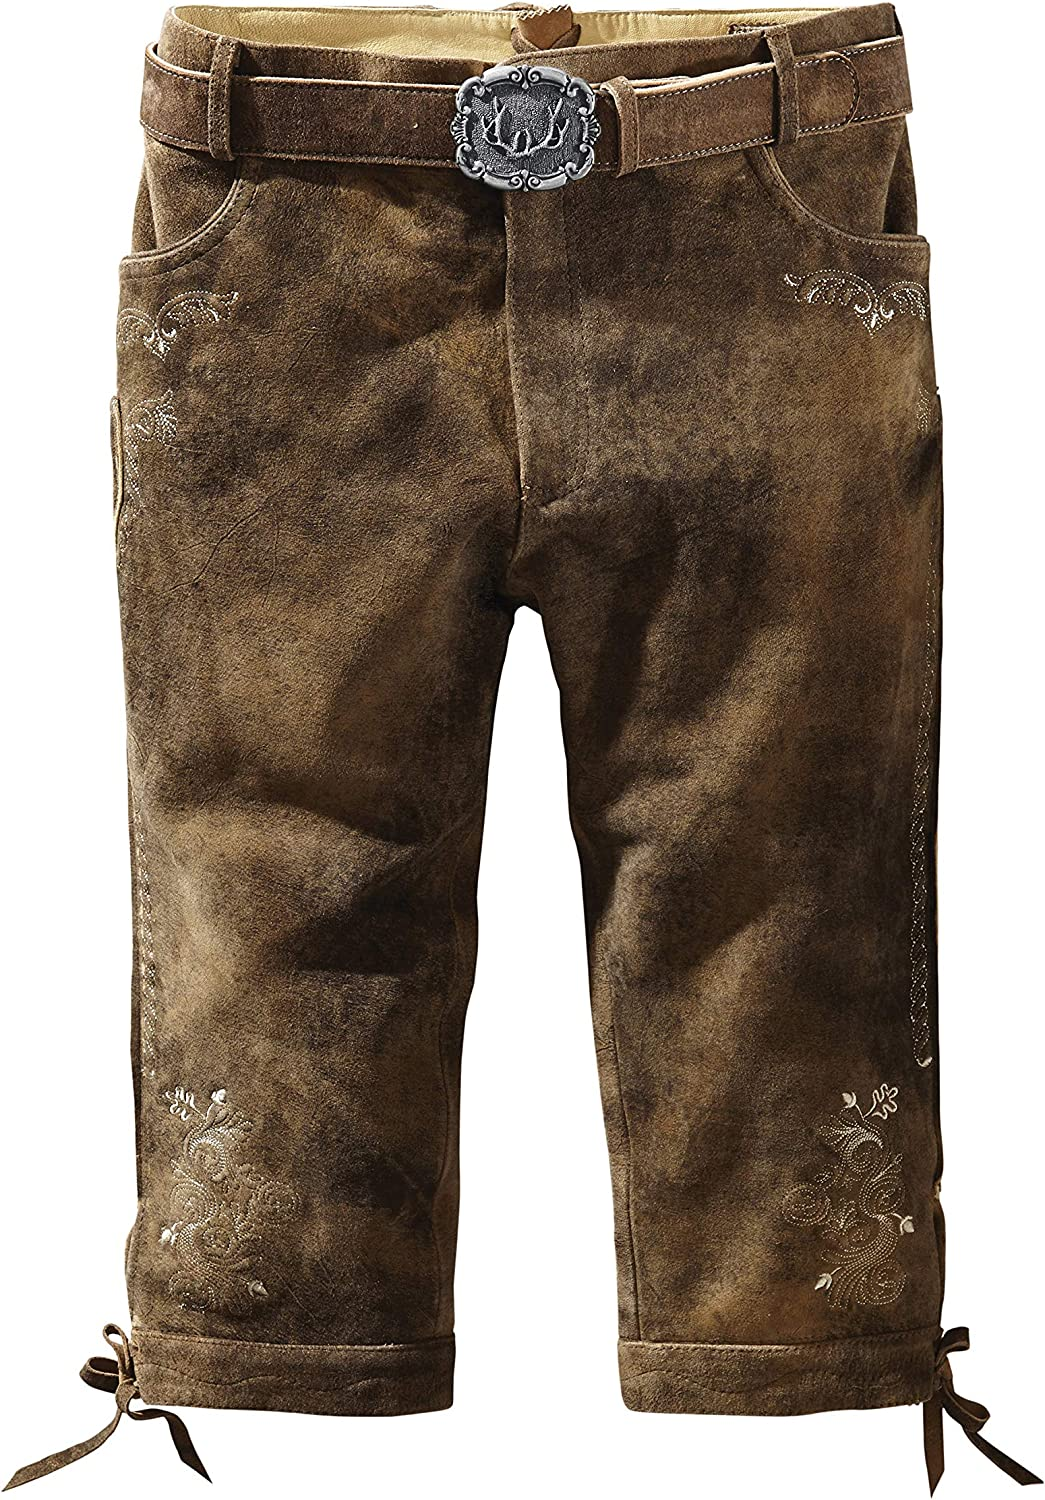 Belt Sigmar3 Brown Stockerpoint German Leather Trousers incl